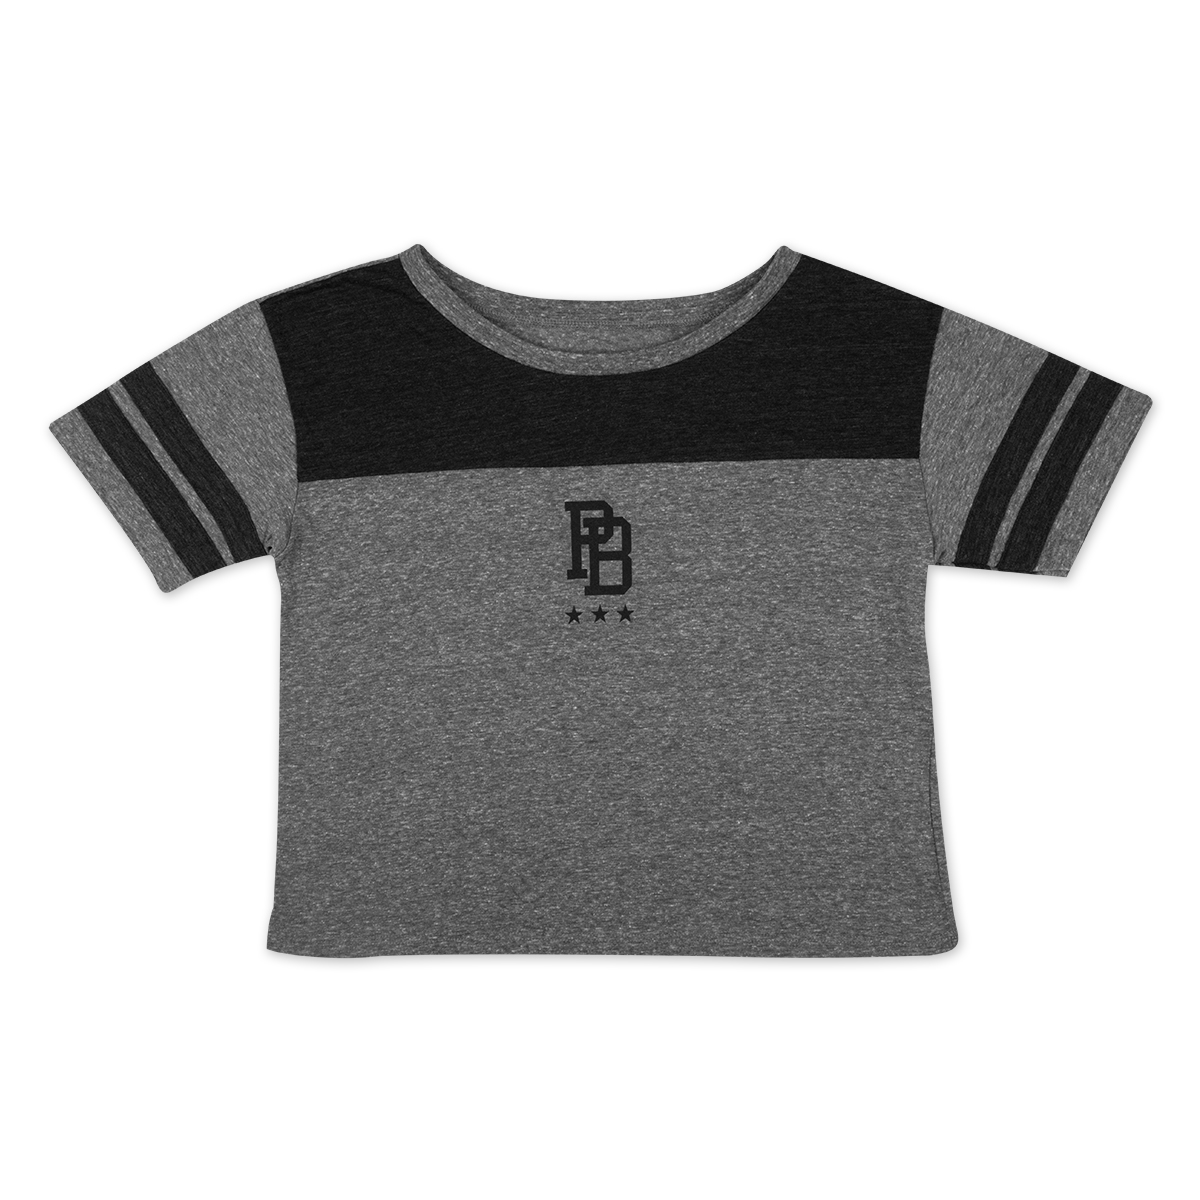 Ladies Crop Top DALE 81 Black Details